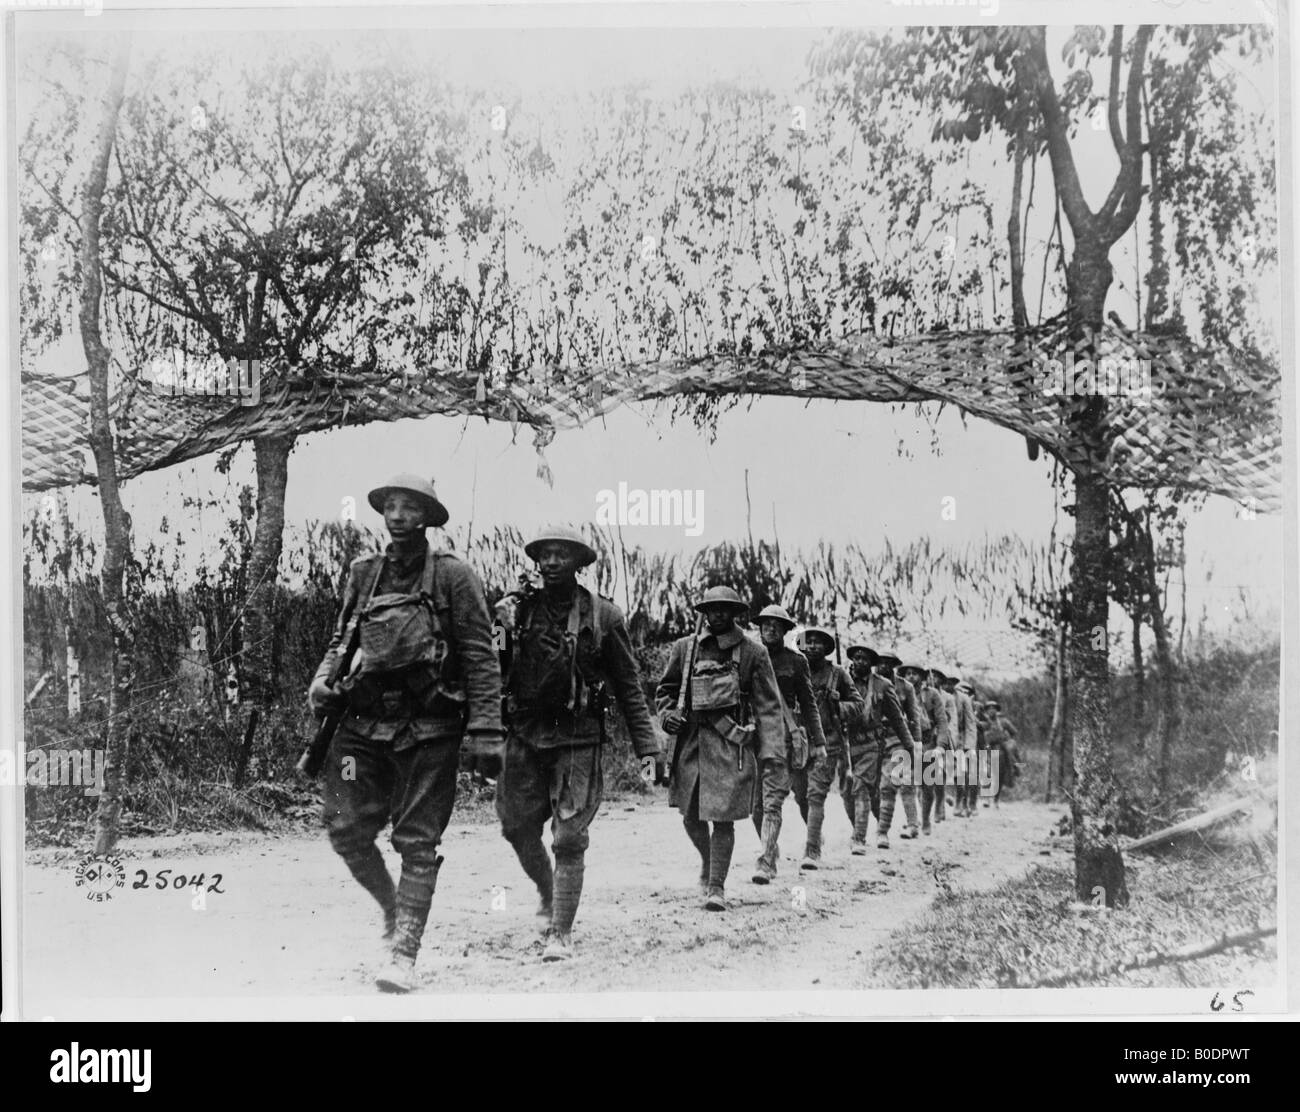 U S Army infantry troops African American unit marching northwest of Verdun France in World War I - Stock Image